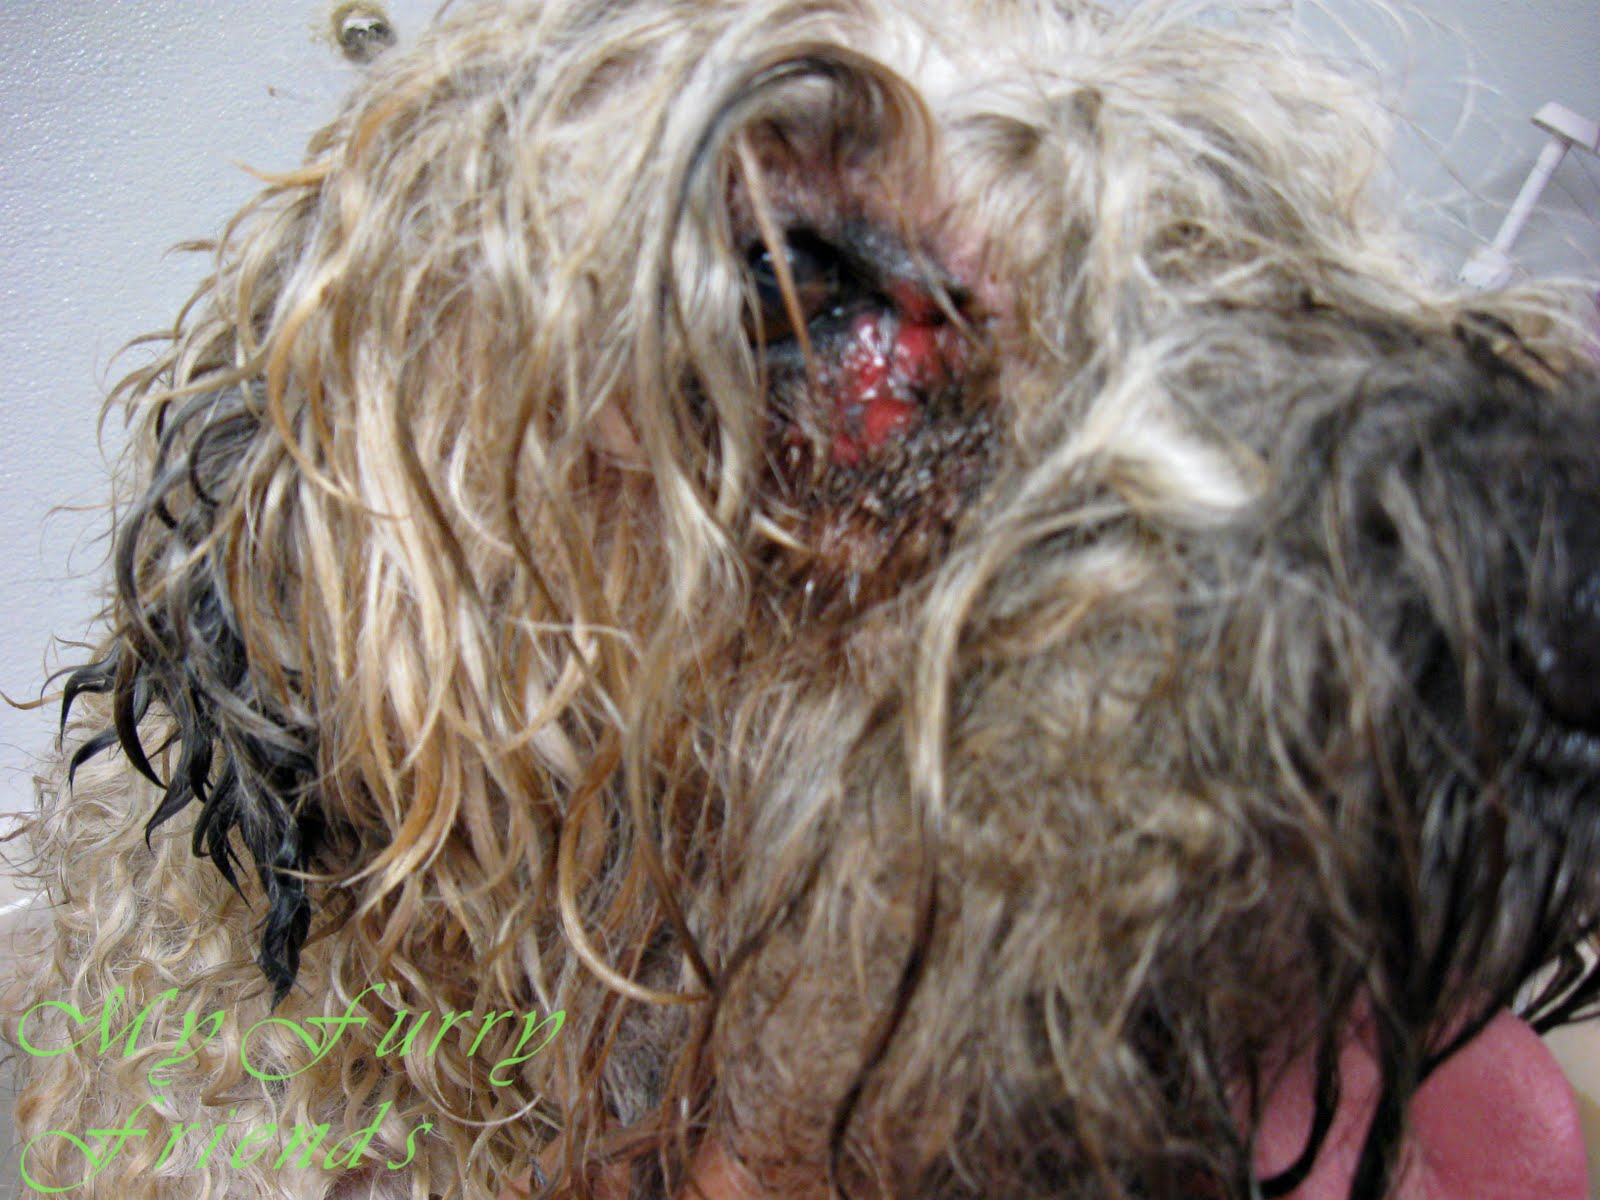 Around Eye Irritation On Dogs After Grooming